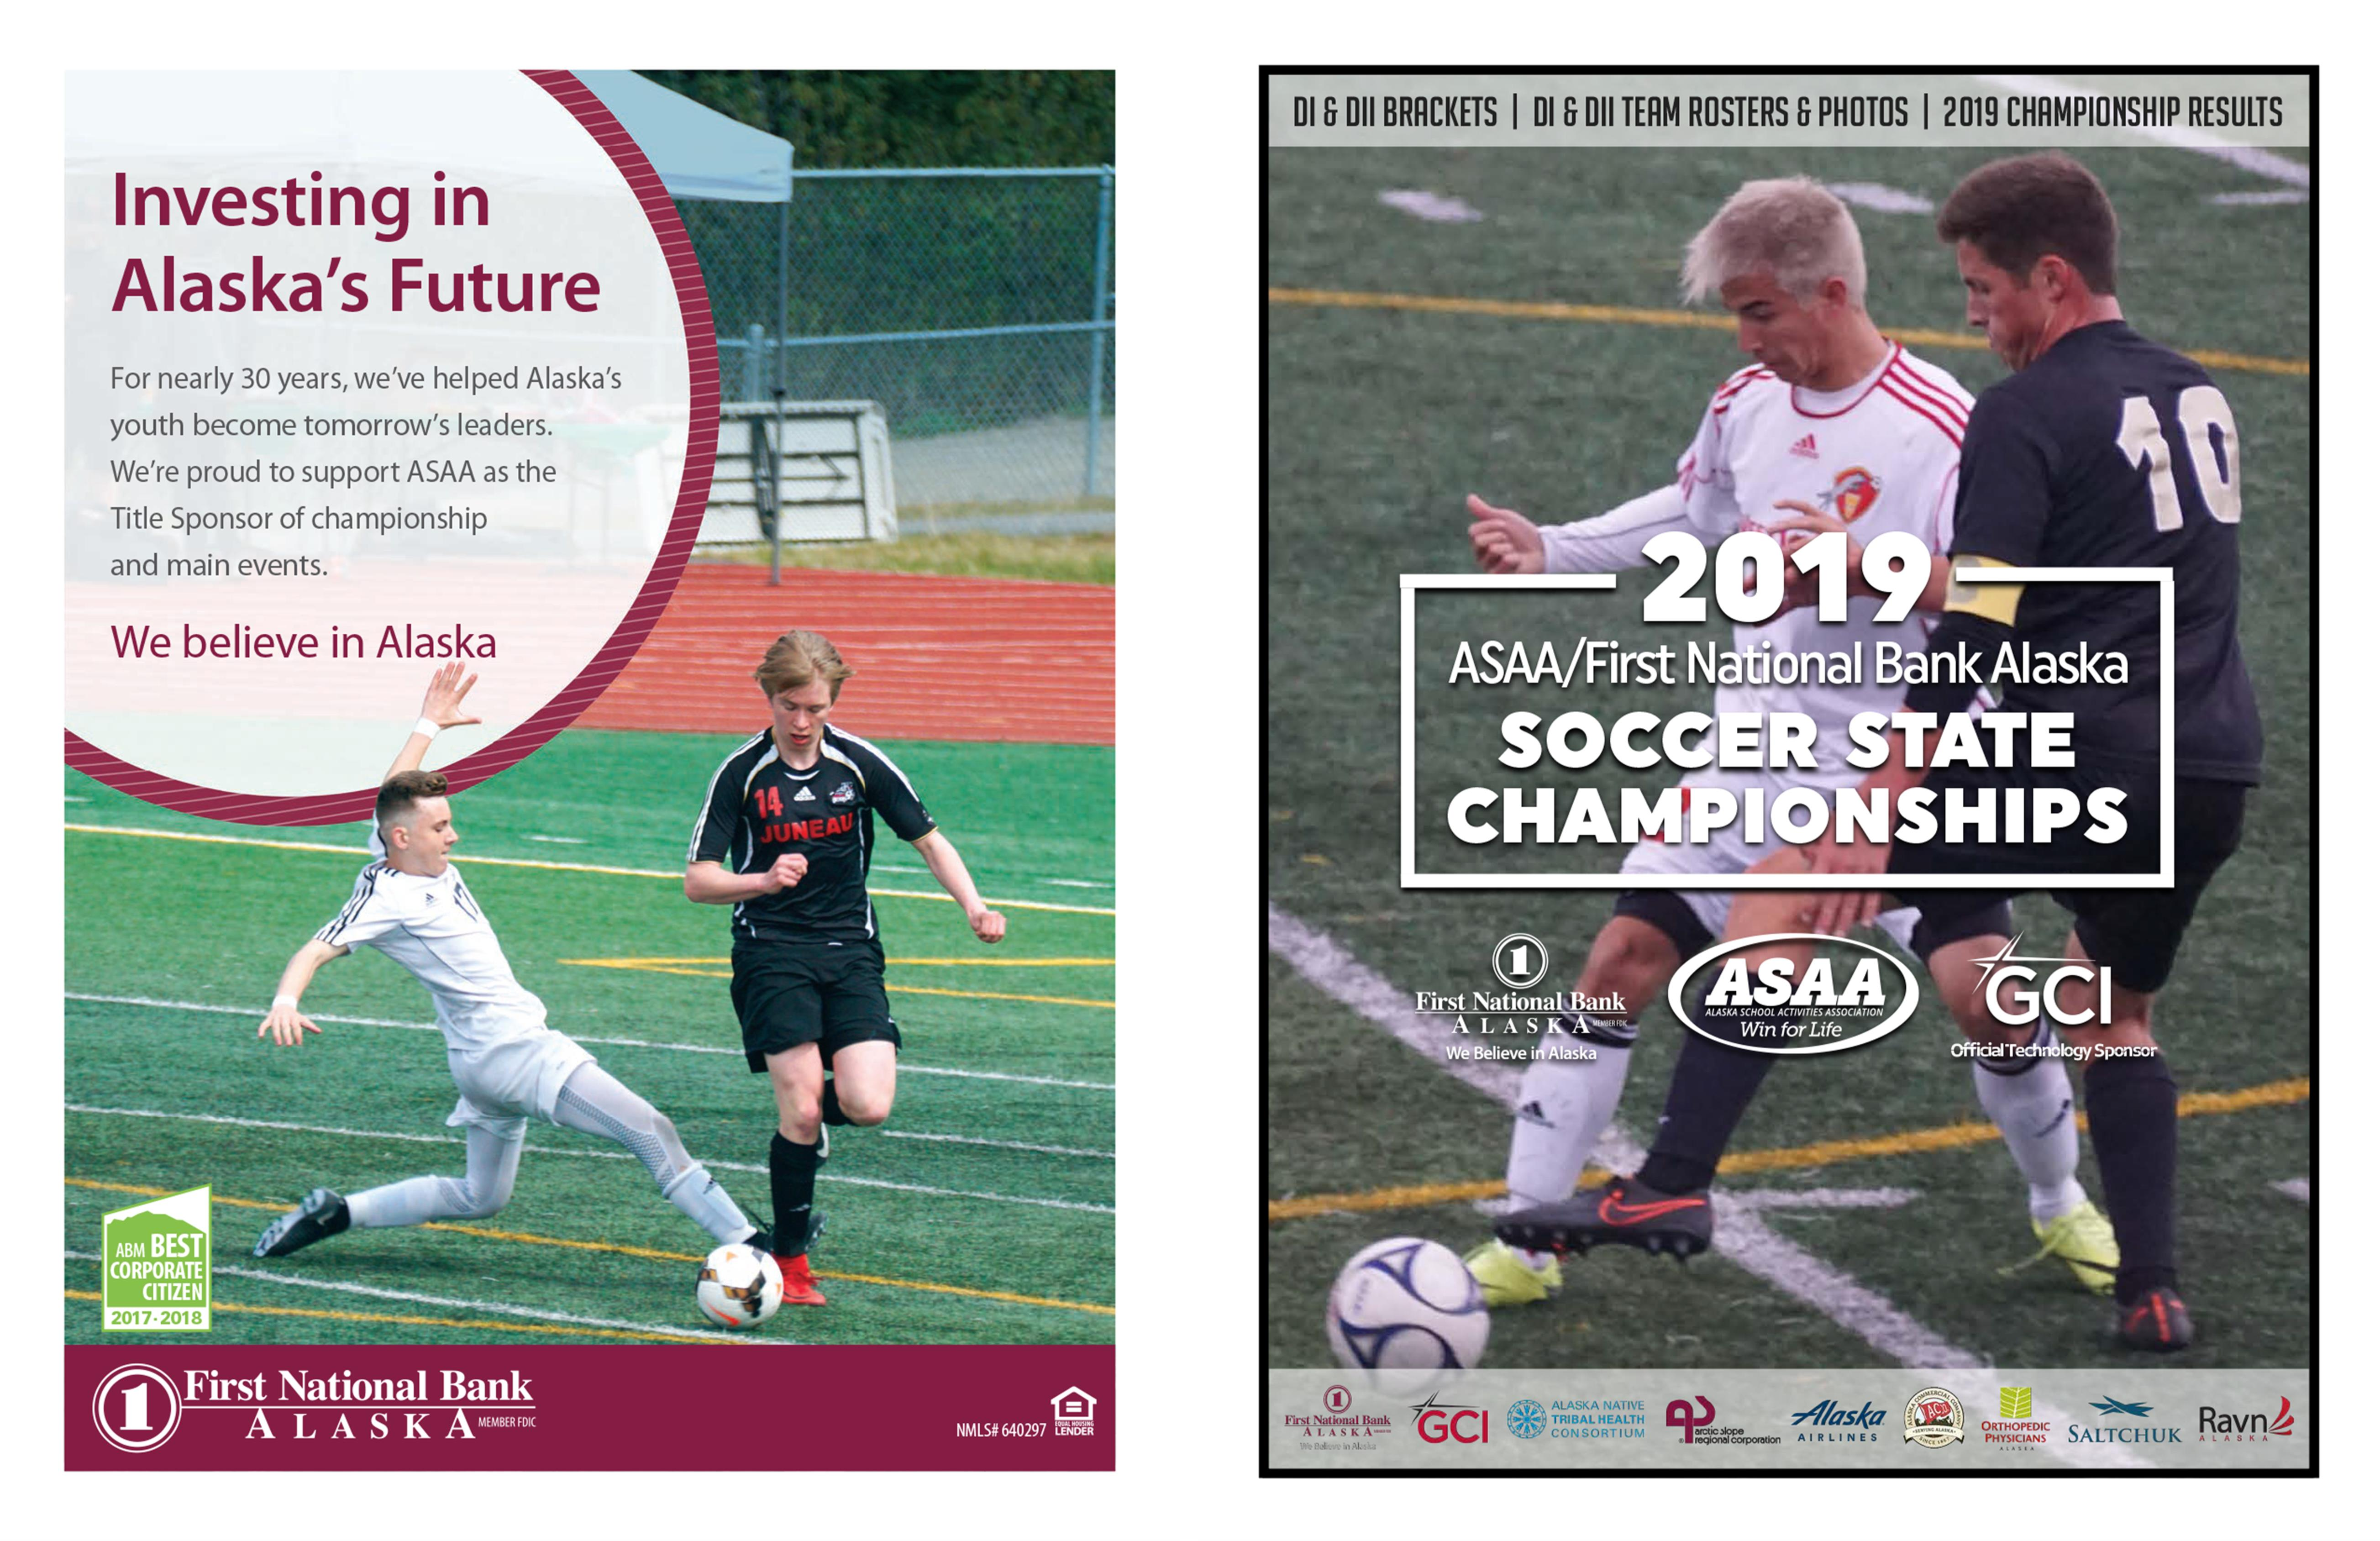 2019 ASAA/First National Bank Alaska Soccer State Championship Program cover image